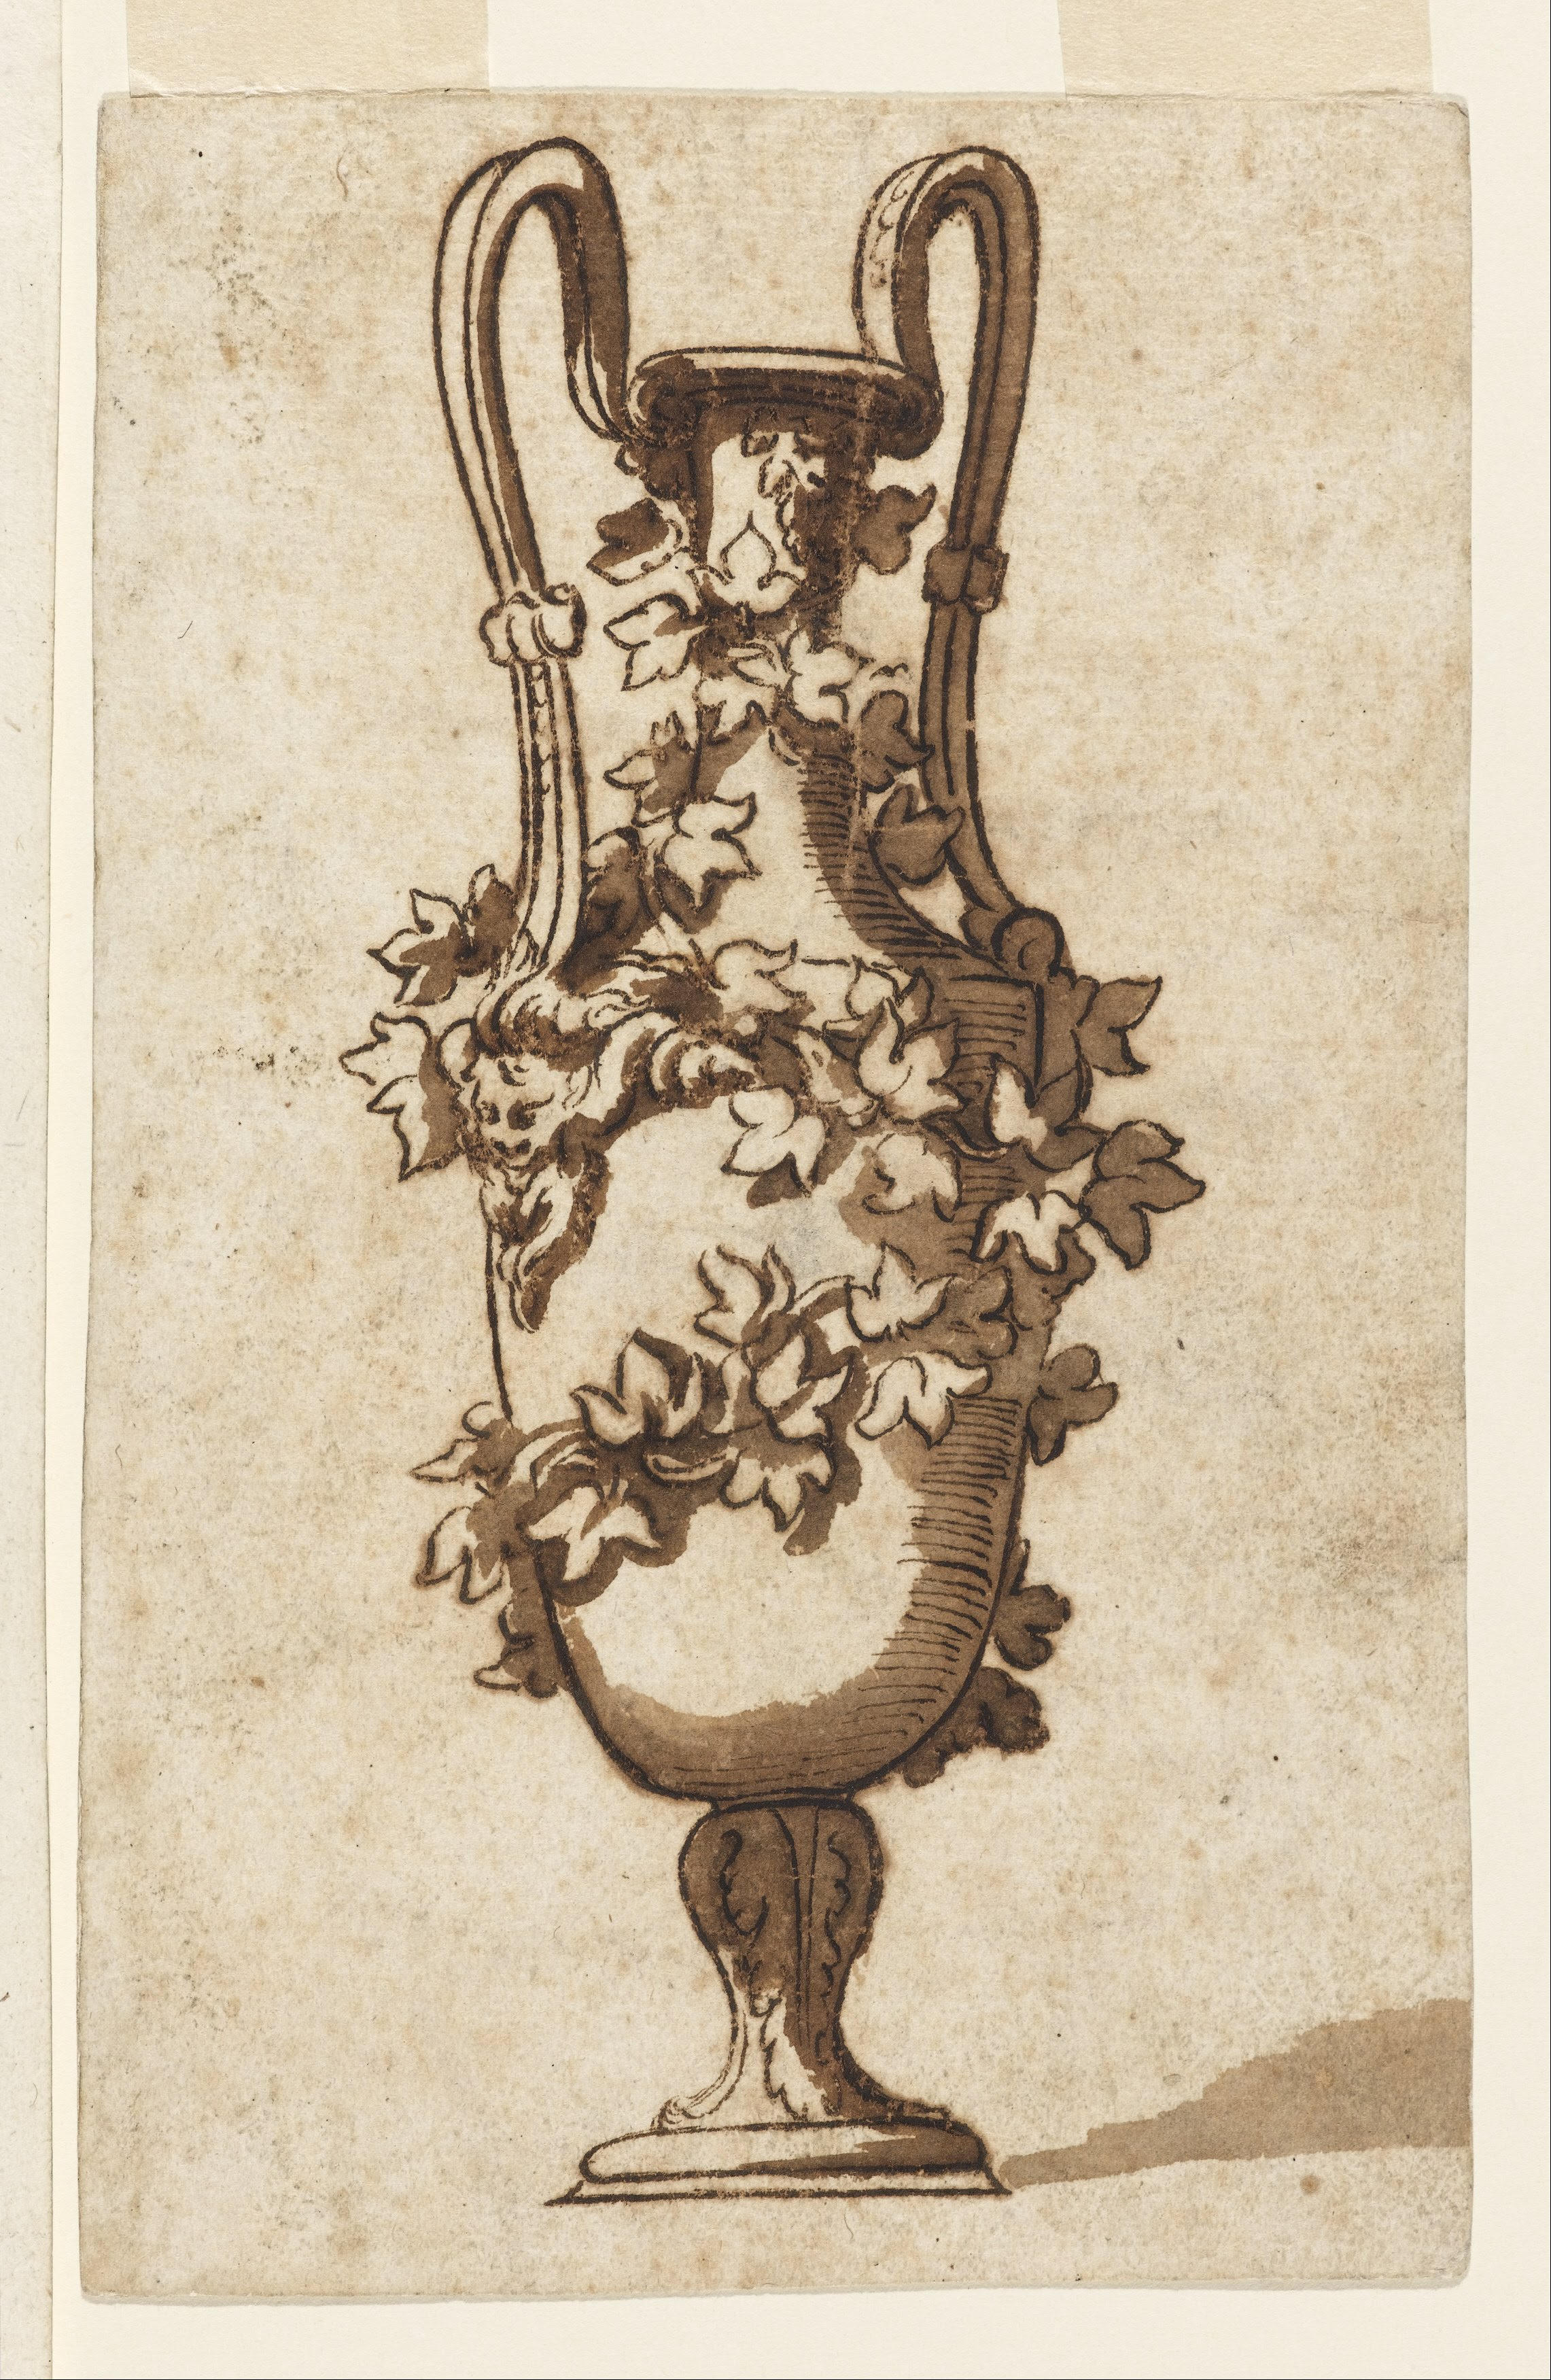 Decoration For Project Filedesign For A Decorative Vase Google Art Projectjpg